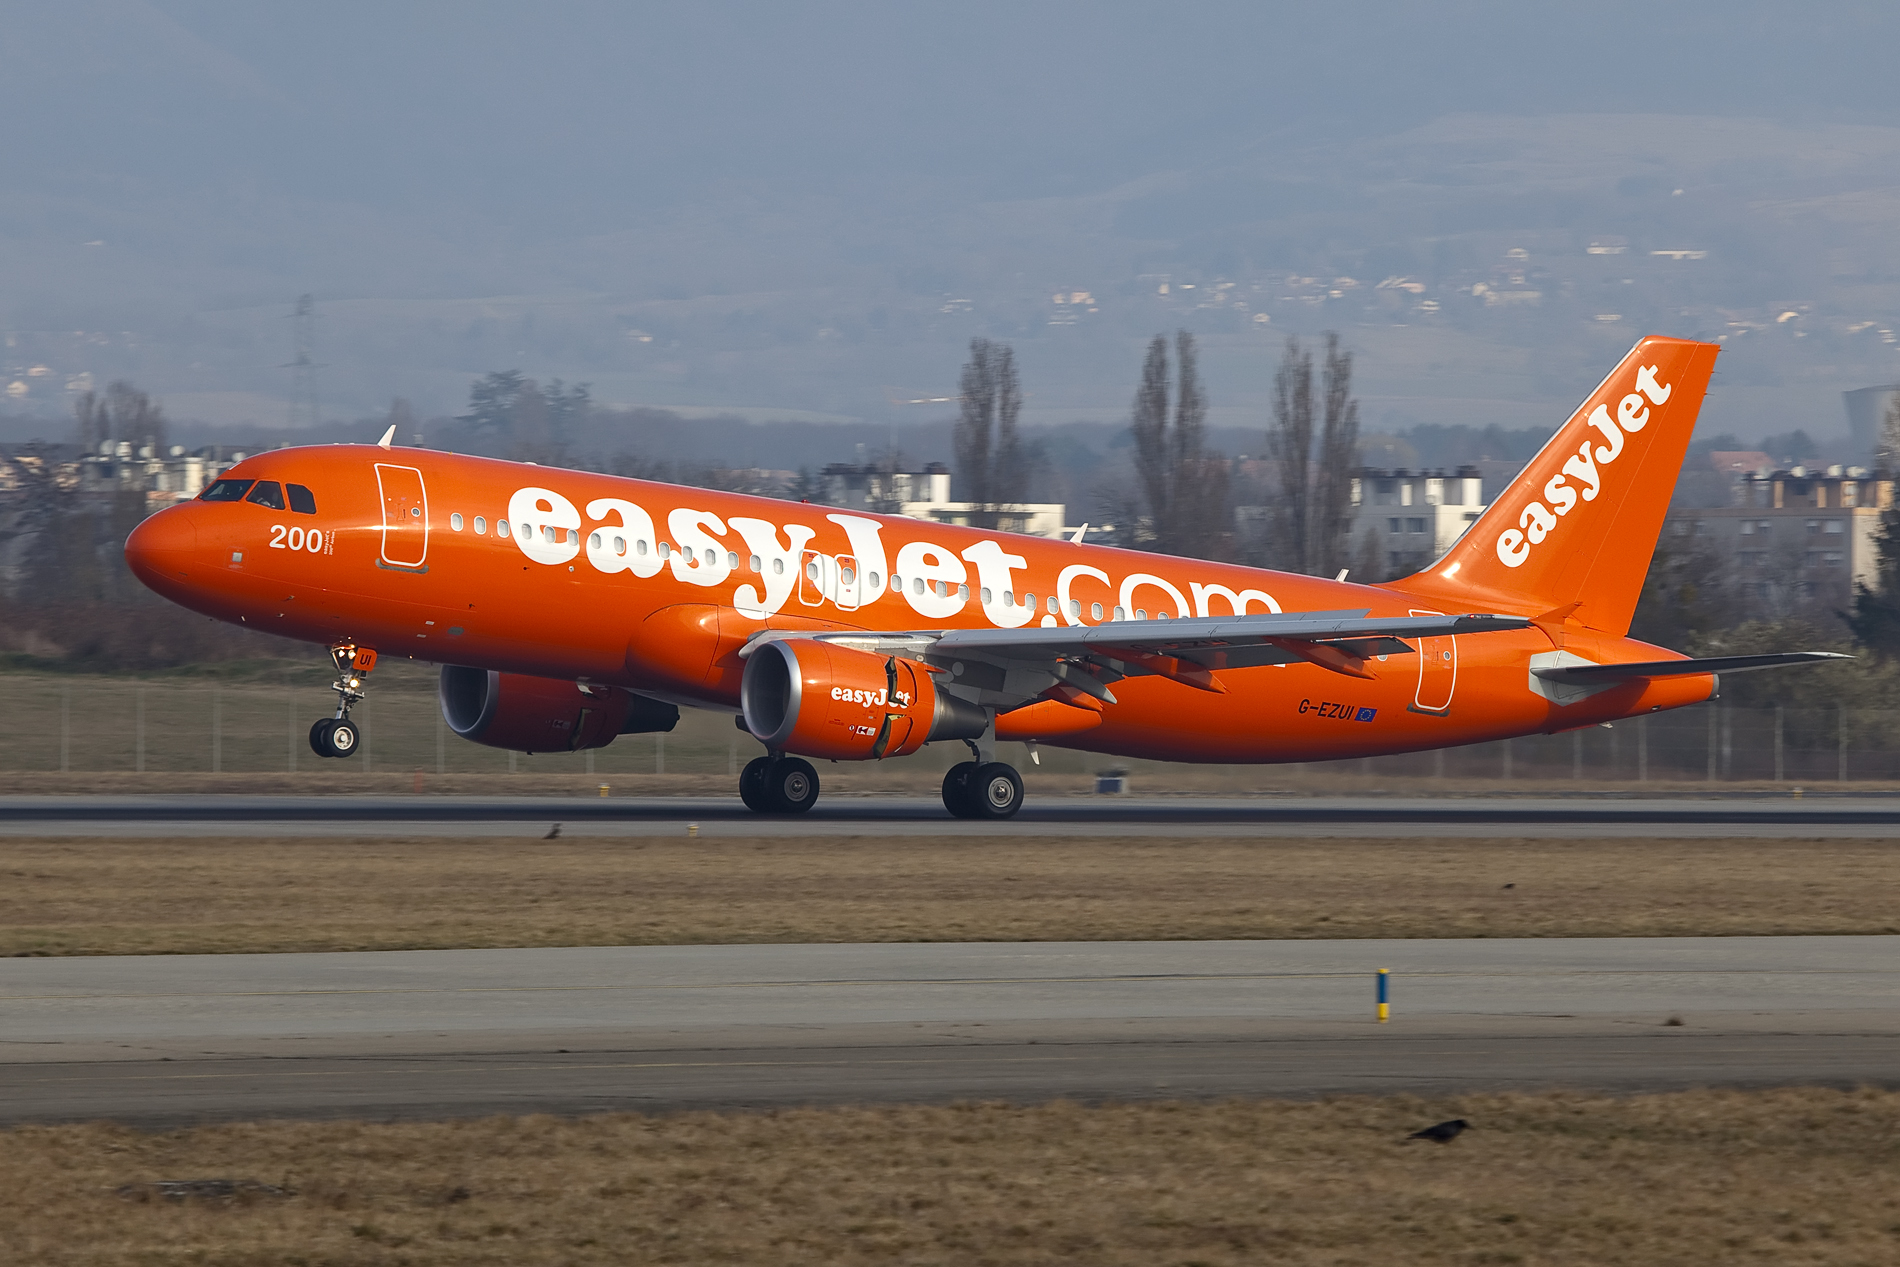 easyJet recieves its 200th aircraft G-EZUI